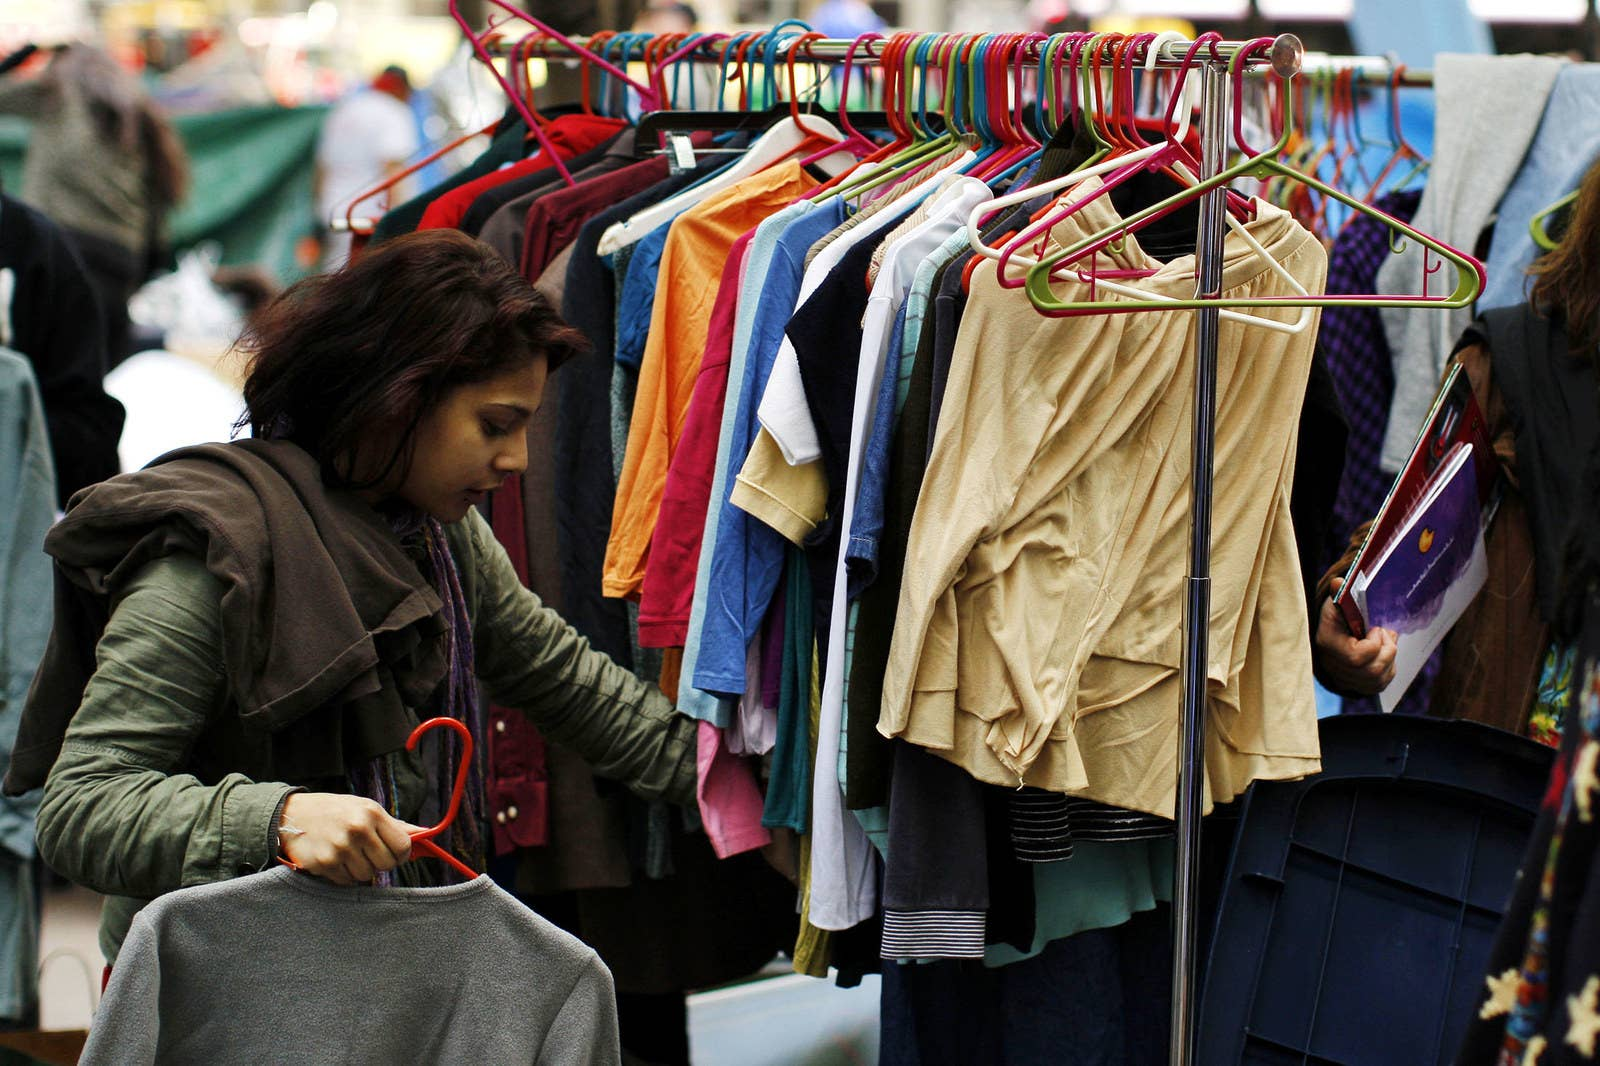 A member of the Occupy Wall Street movement picks up clean clothes from a rack of free, donated clothes at Zuccotti Park on Oct. 22, 2011.